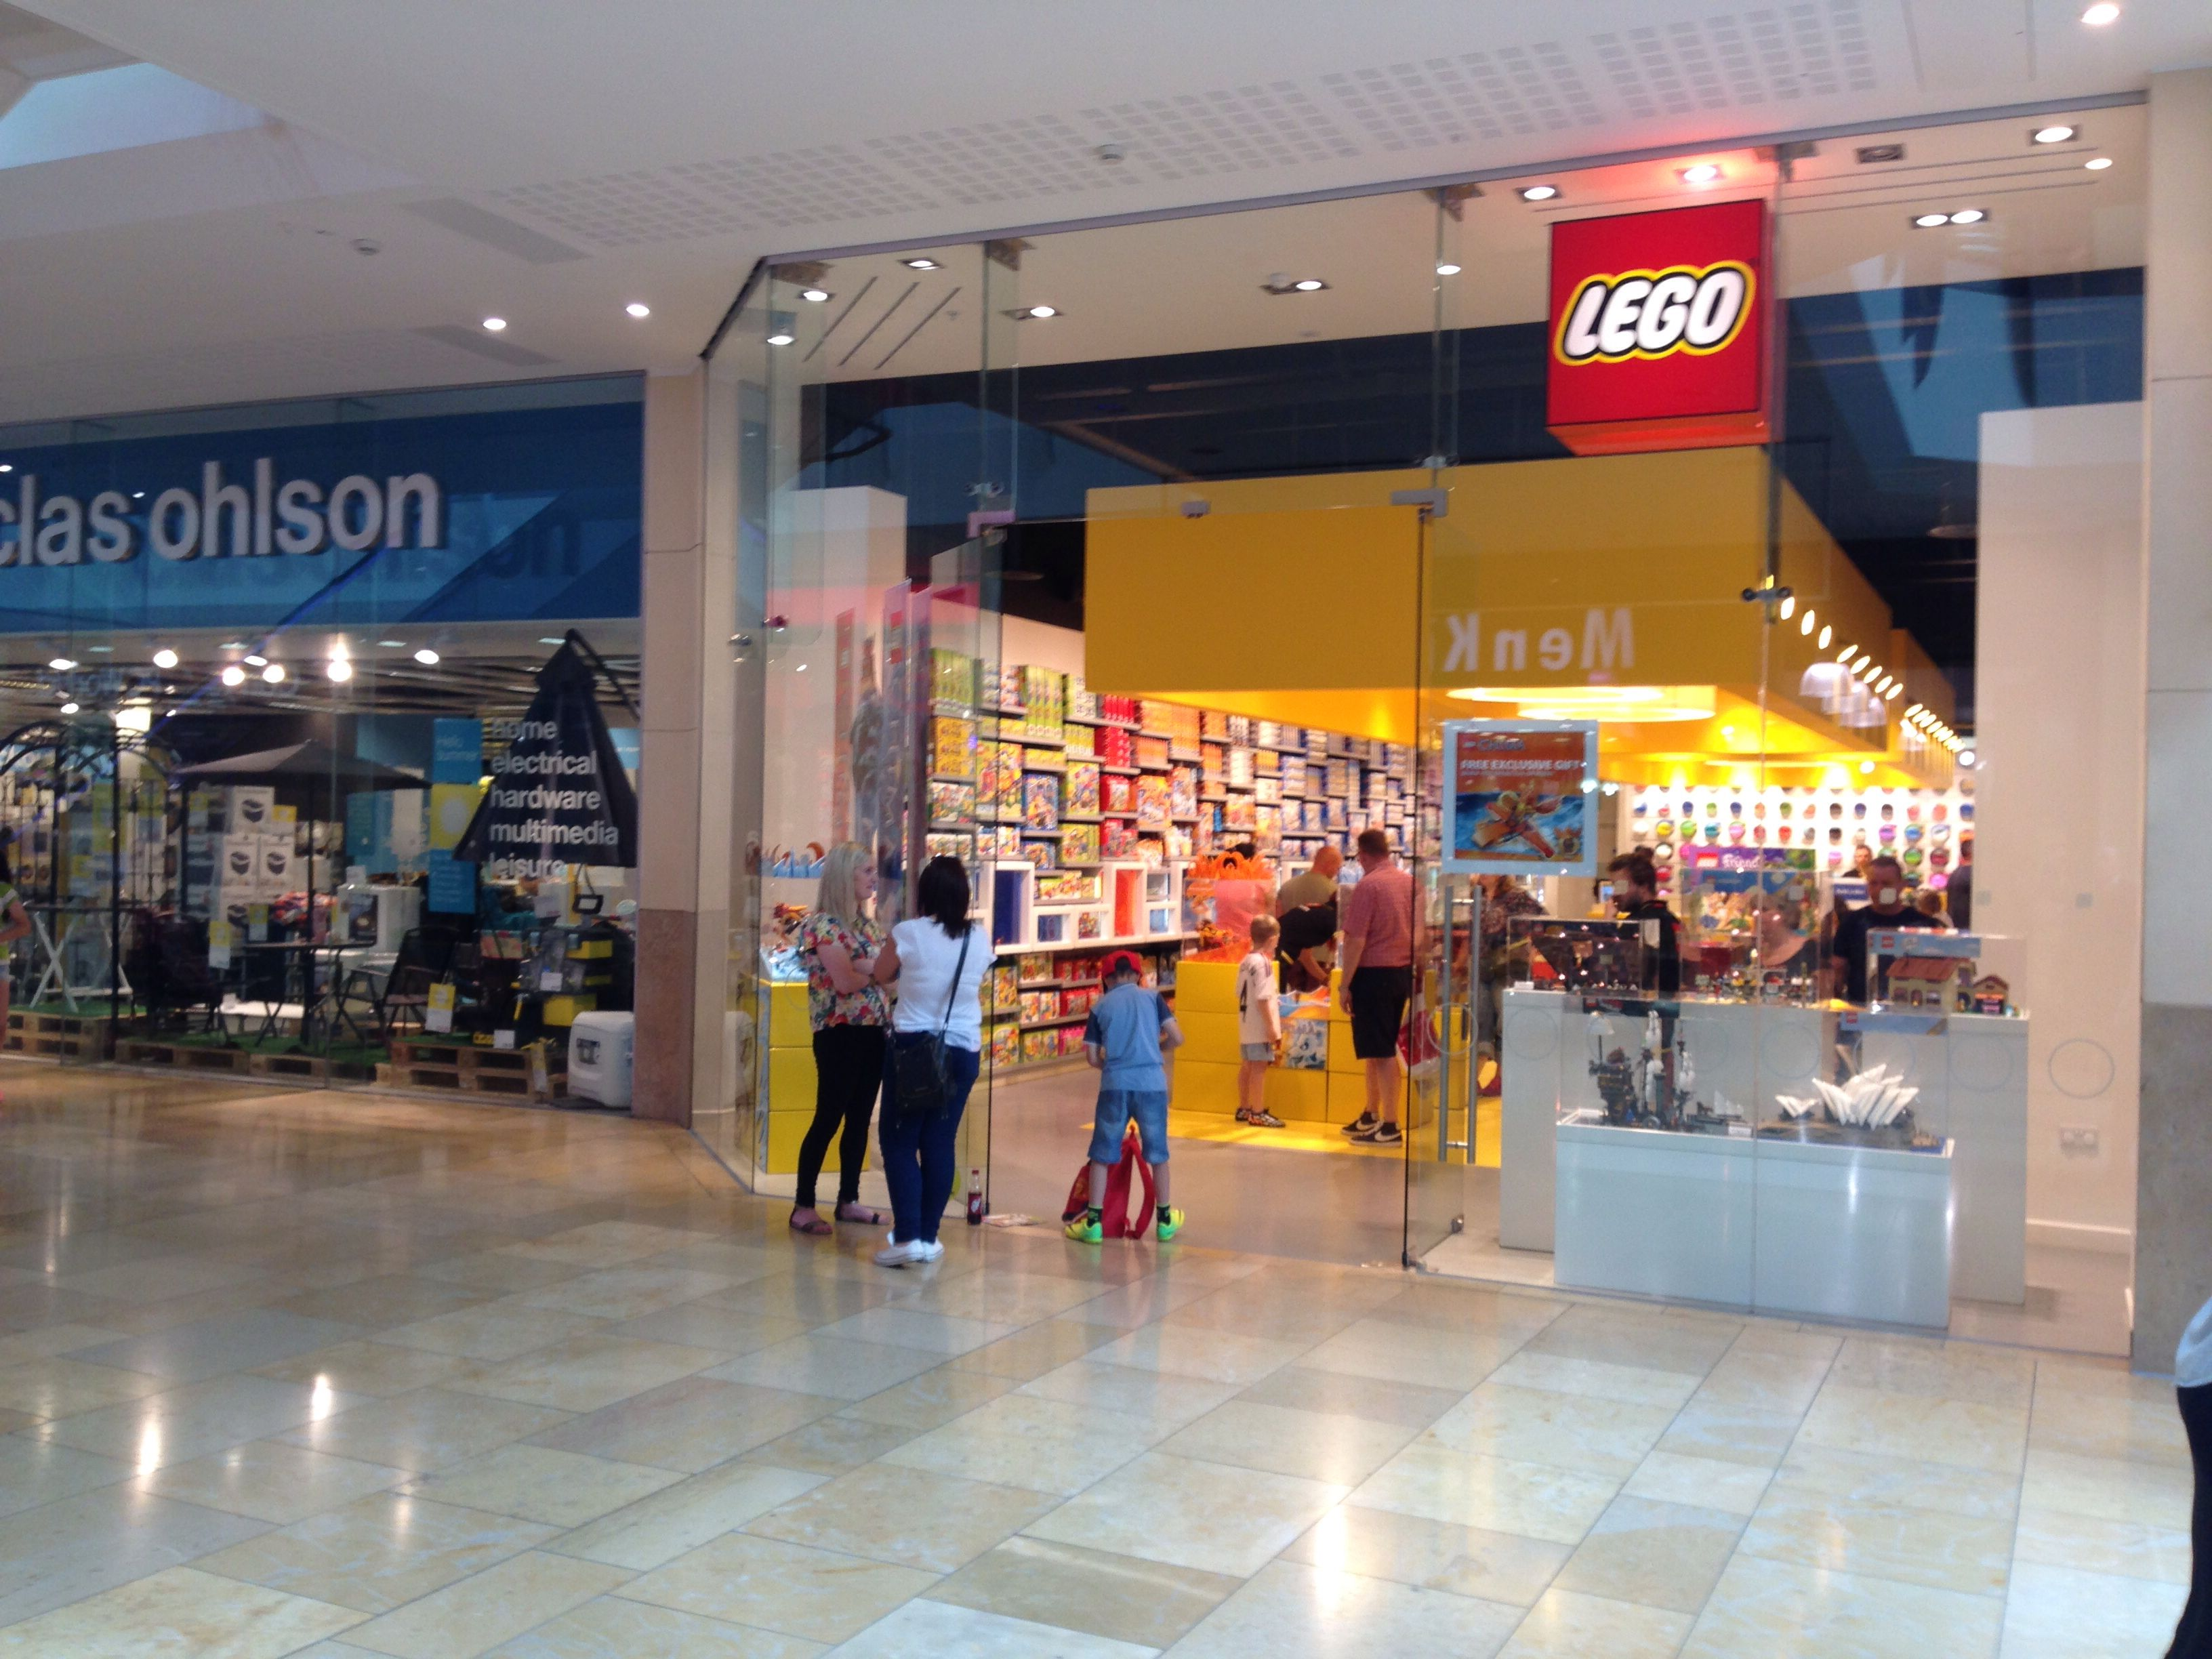 Lego store cardiff wales lego stores pinterest lego for Lago store outlet